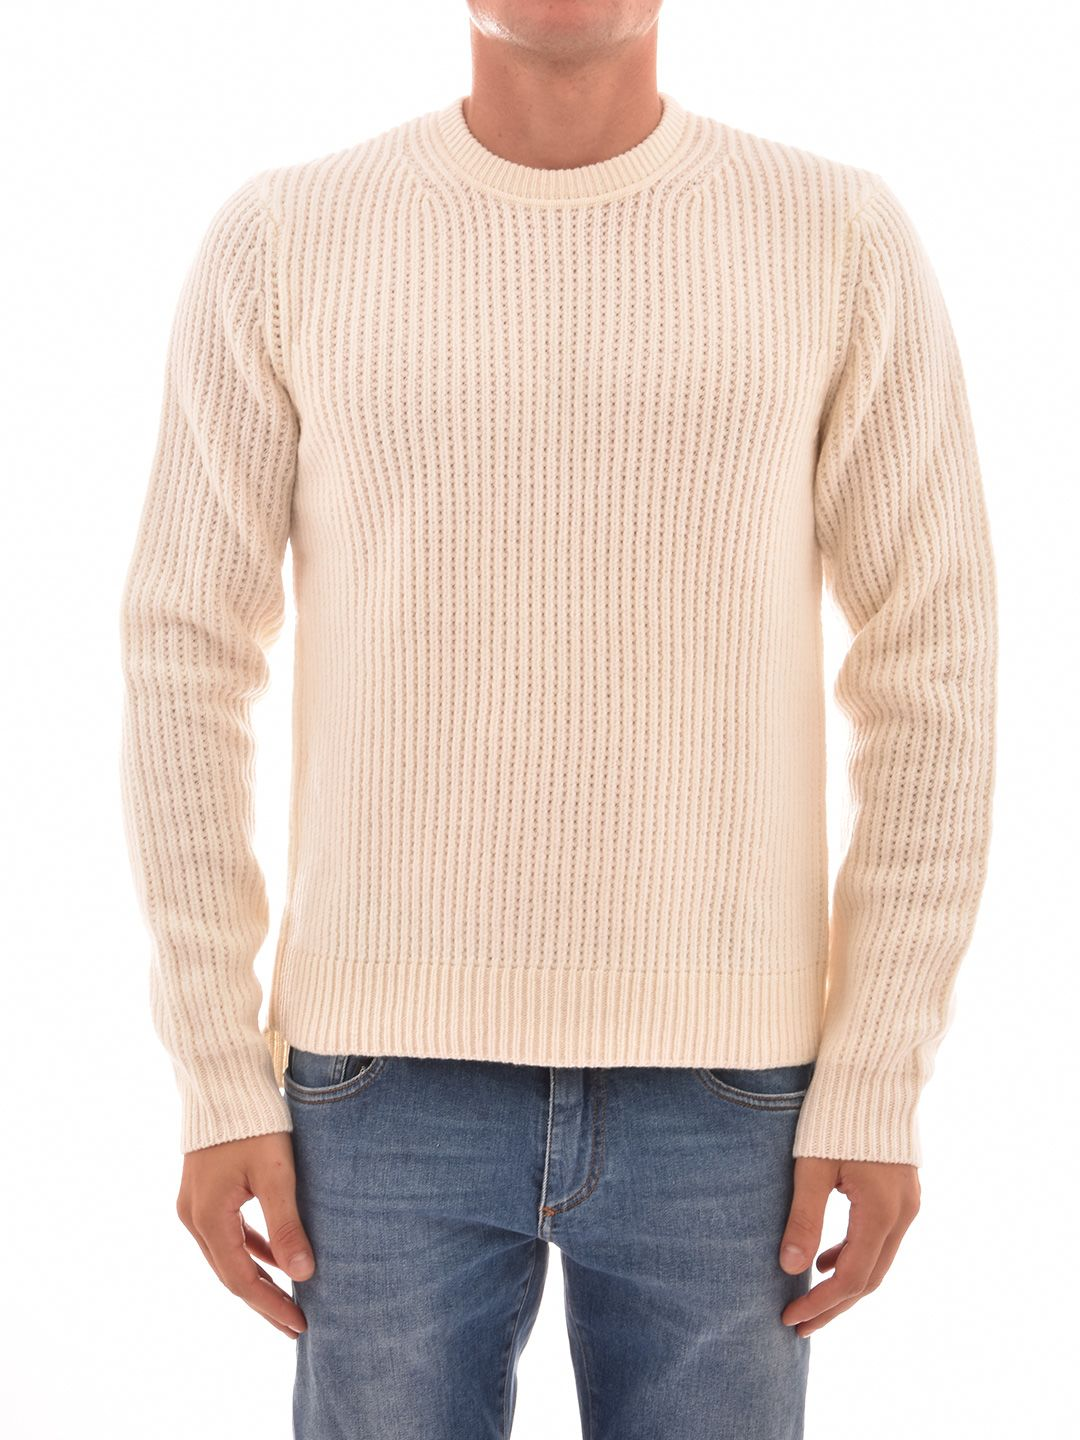 Helmut Lang Ivory Sweater